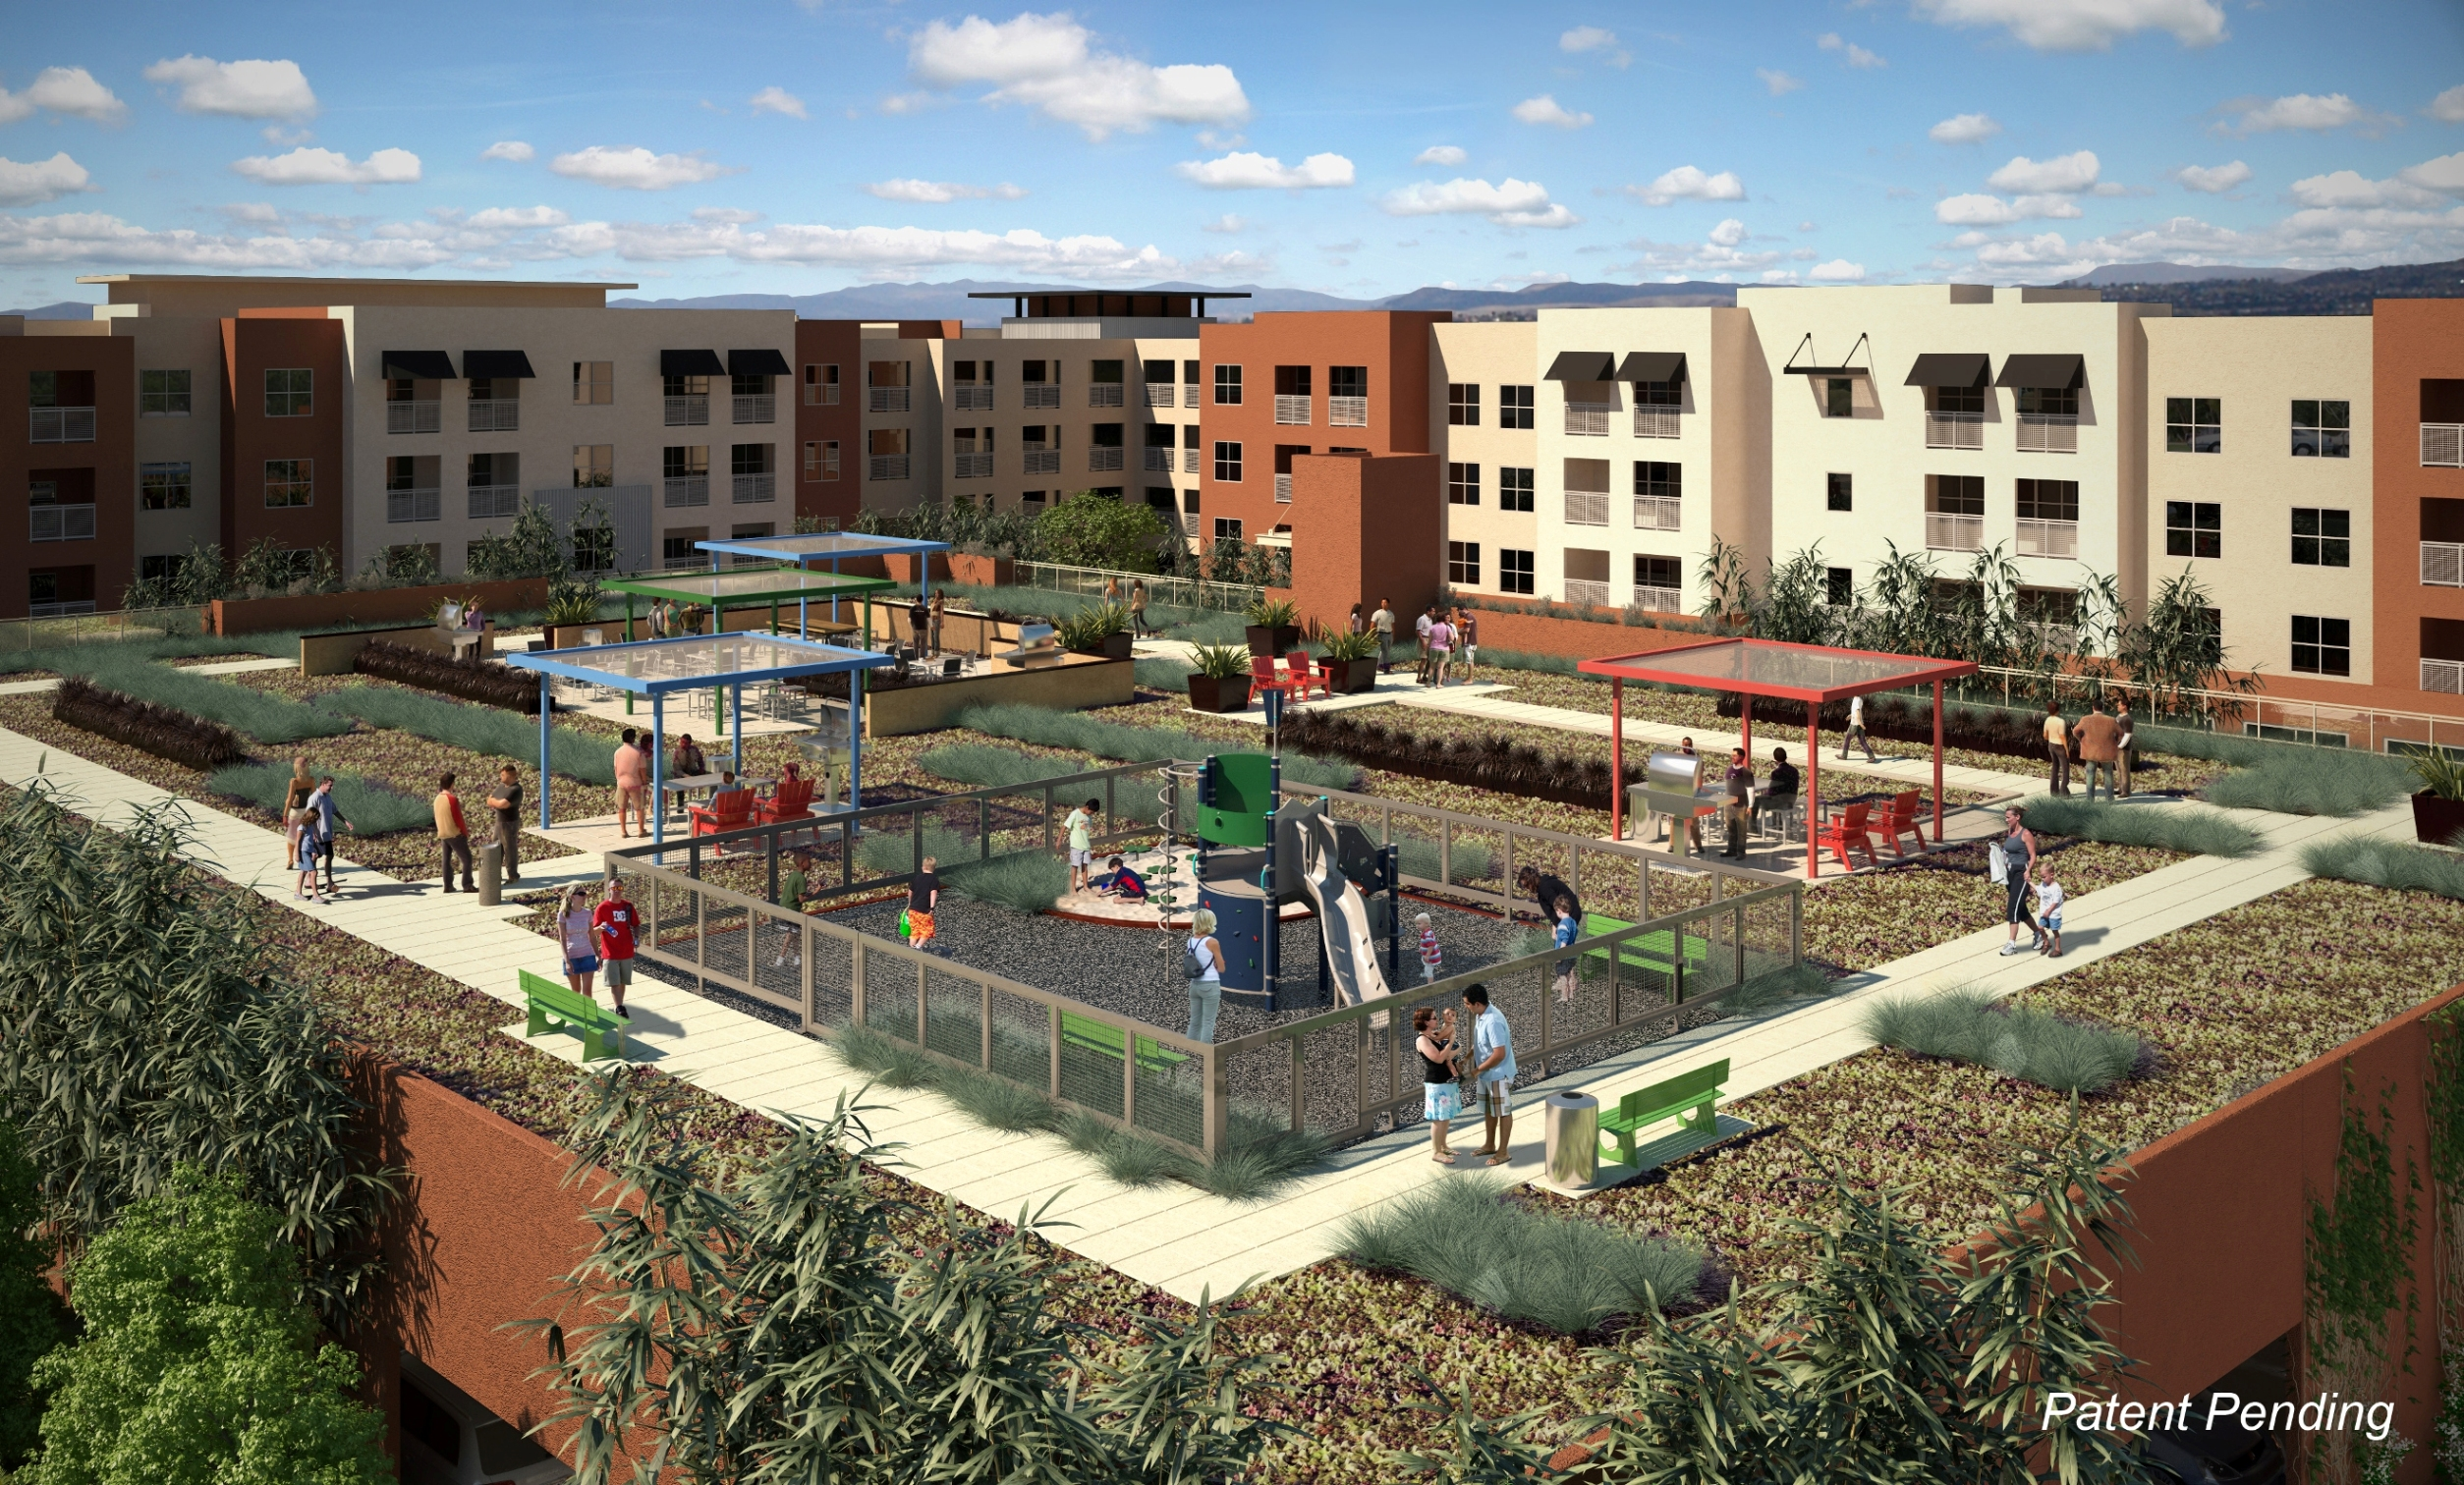 Green Roof Brings Space To Affordable Housing Project